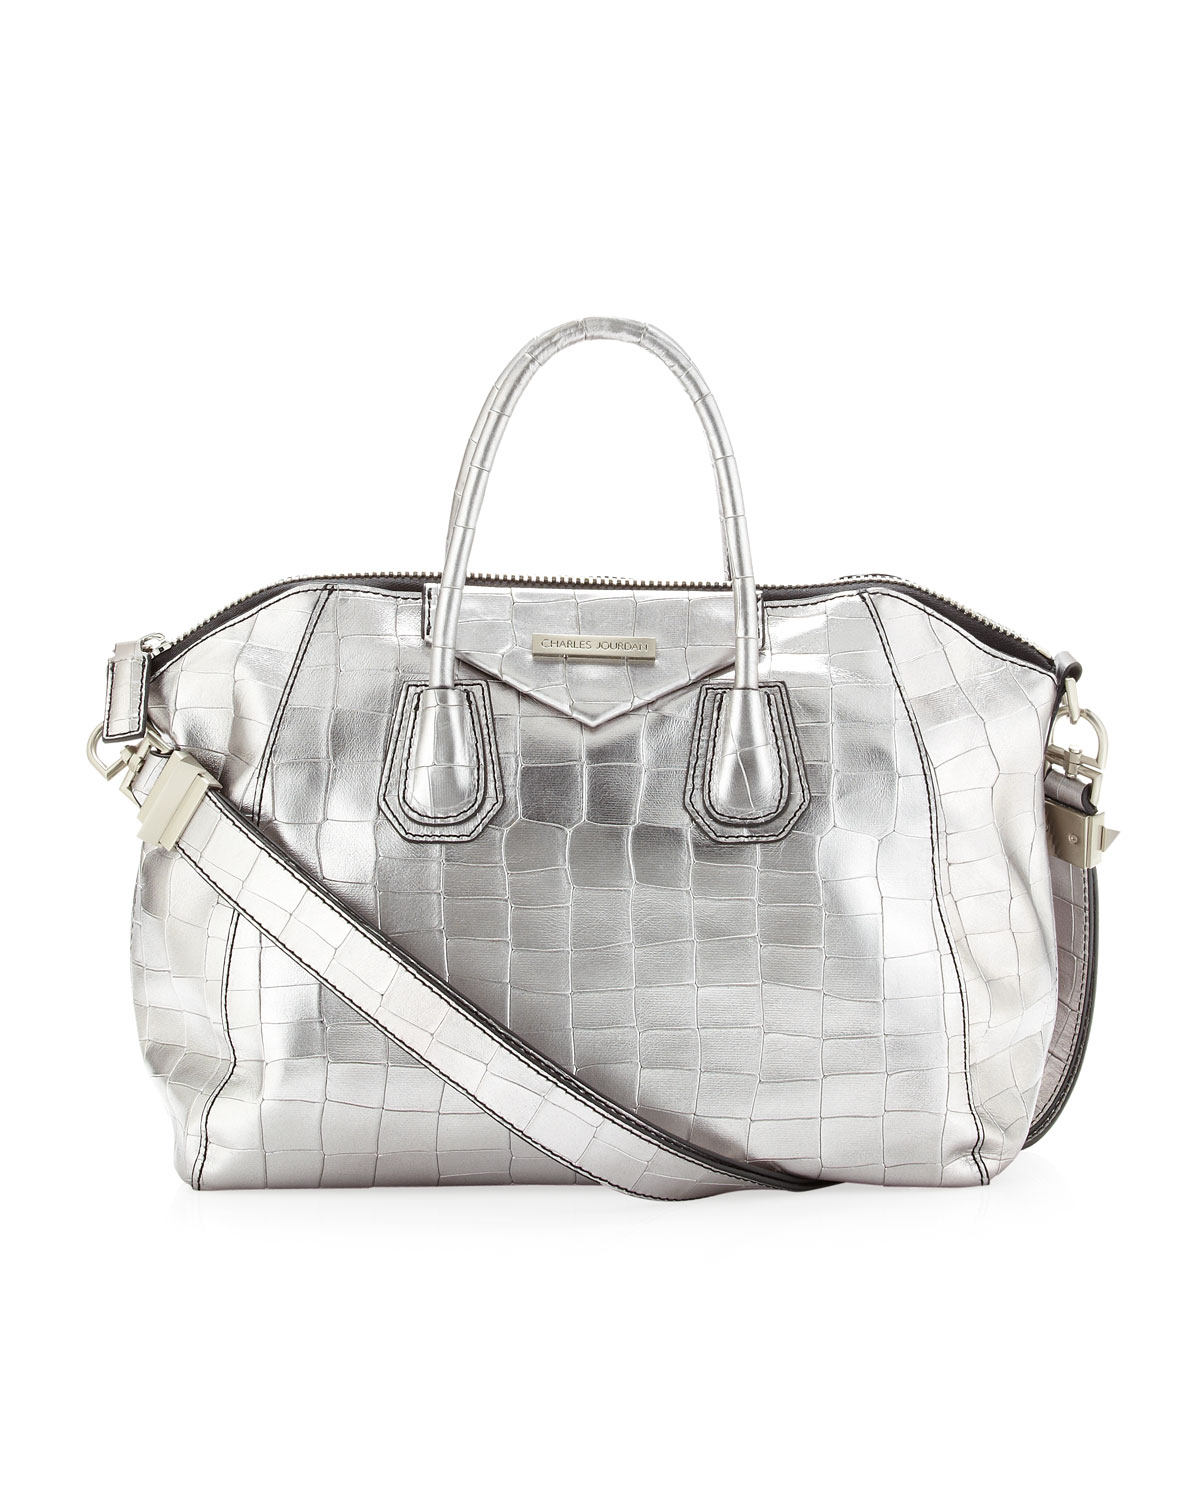 ARGENTO VIVO (bright silver): this is the typical bright silver color, brilliant and scintillating, which is mostly in demand for special occasion handbags